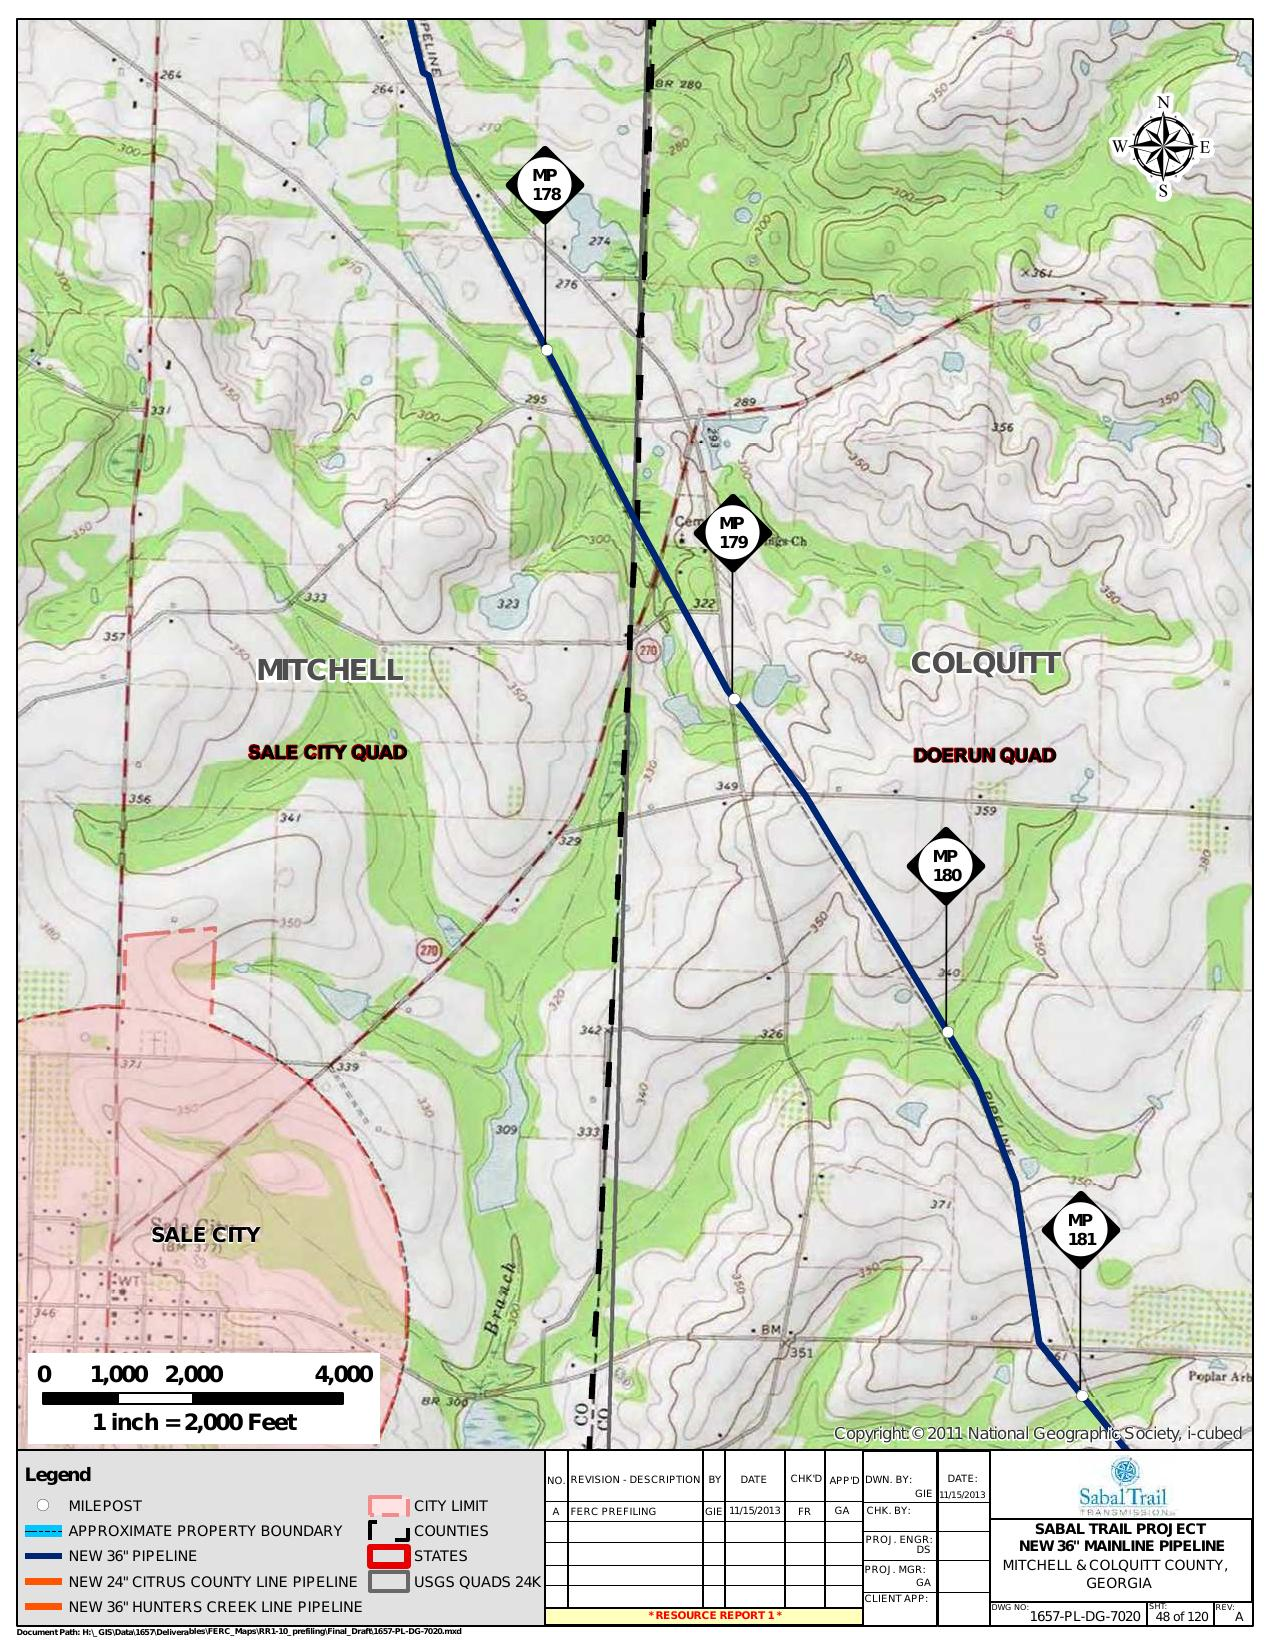 Sale City, Mitchell and Colquitt County, Georgia, in General Project Description, by SpectraBusters, for FERC Docket No. PF14-1-000, 15 November 2013, converted by SpectraBusters